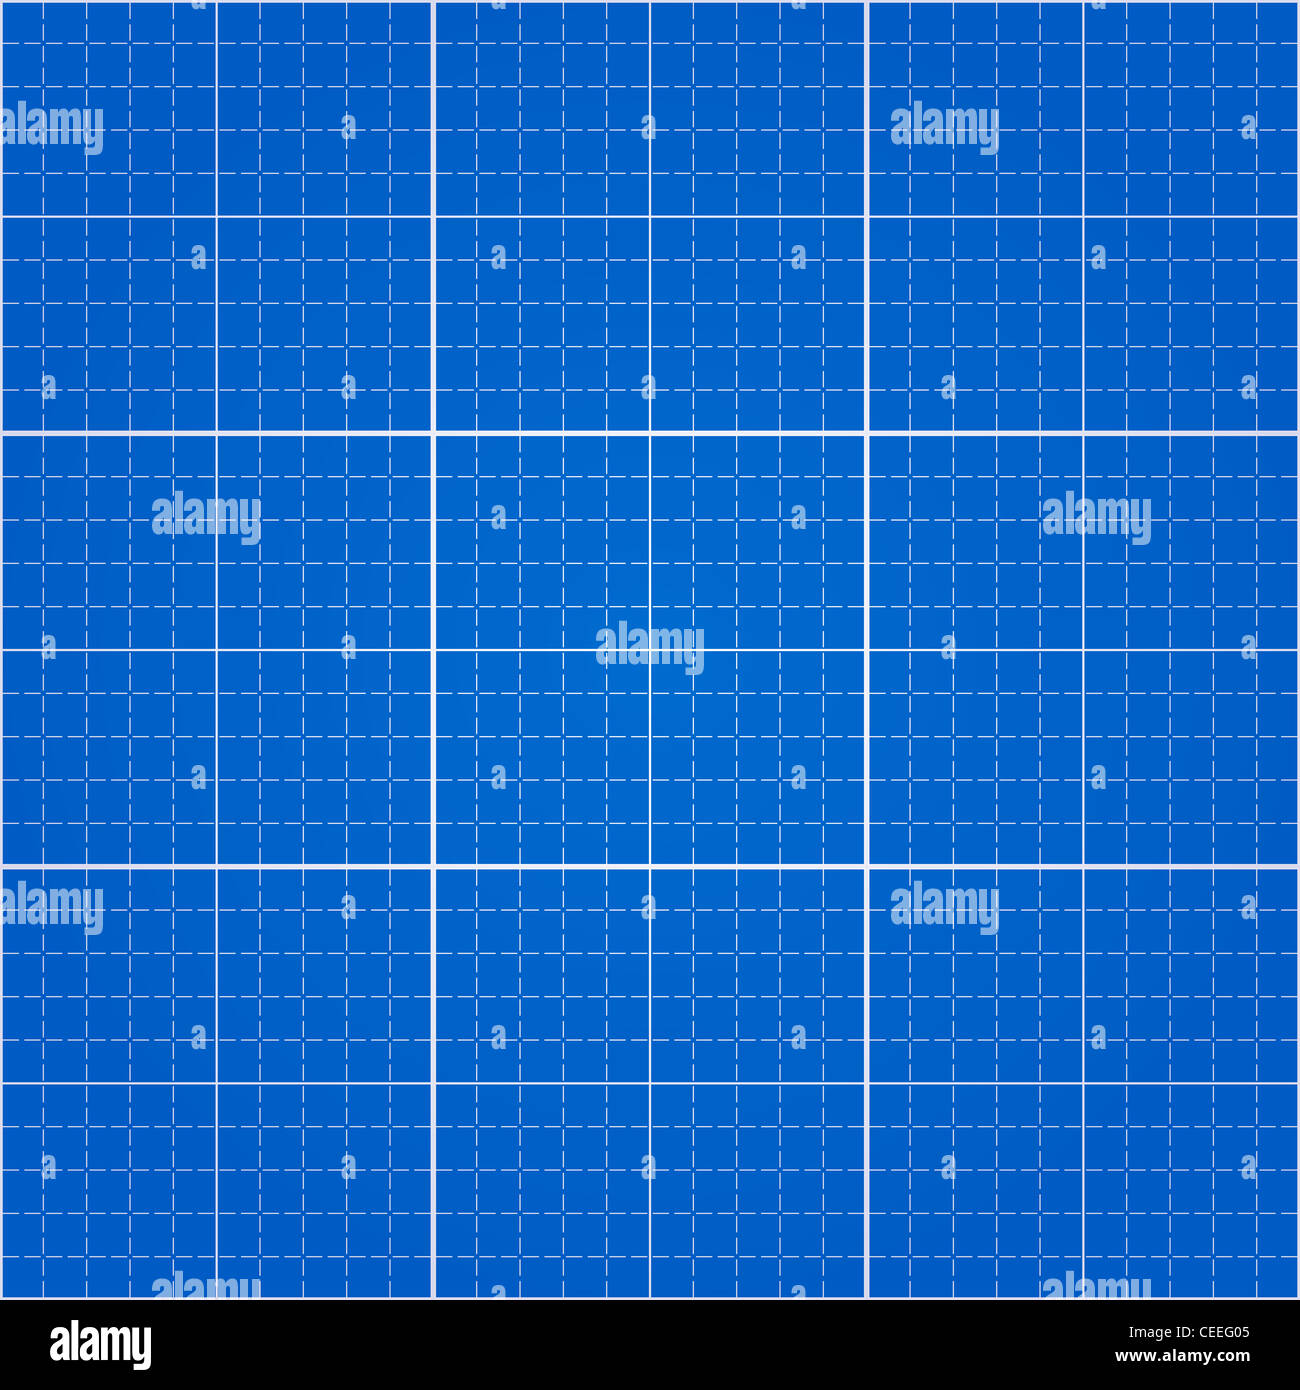 Seamless blueprint background engineering drawing blue paper seamless blueprint background engineering drawing blue paper background with pattern swatch in eps file malvernweather Choice Image